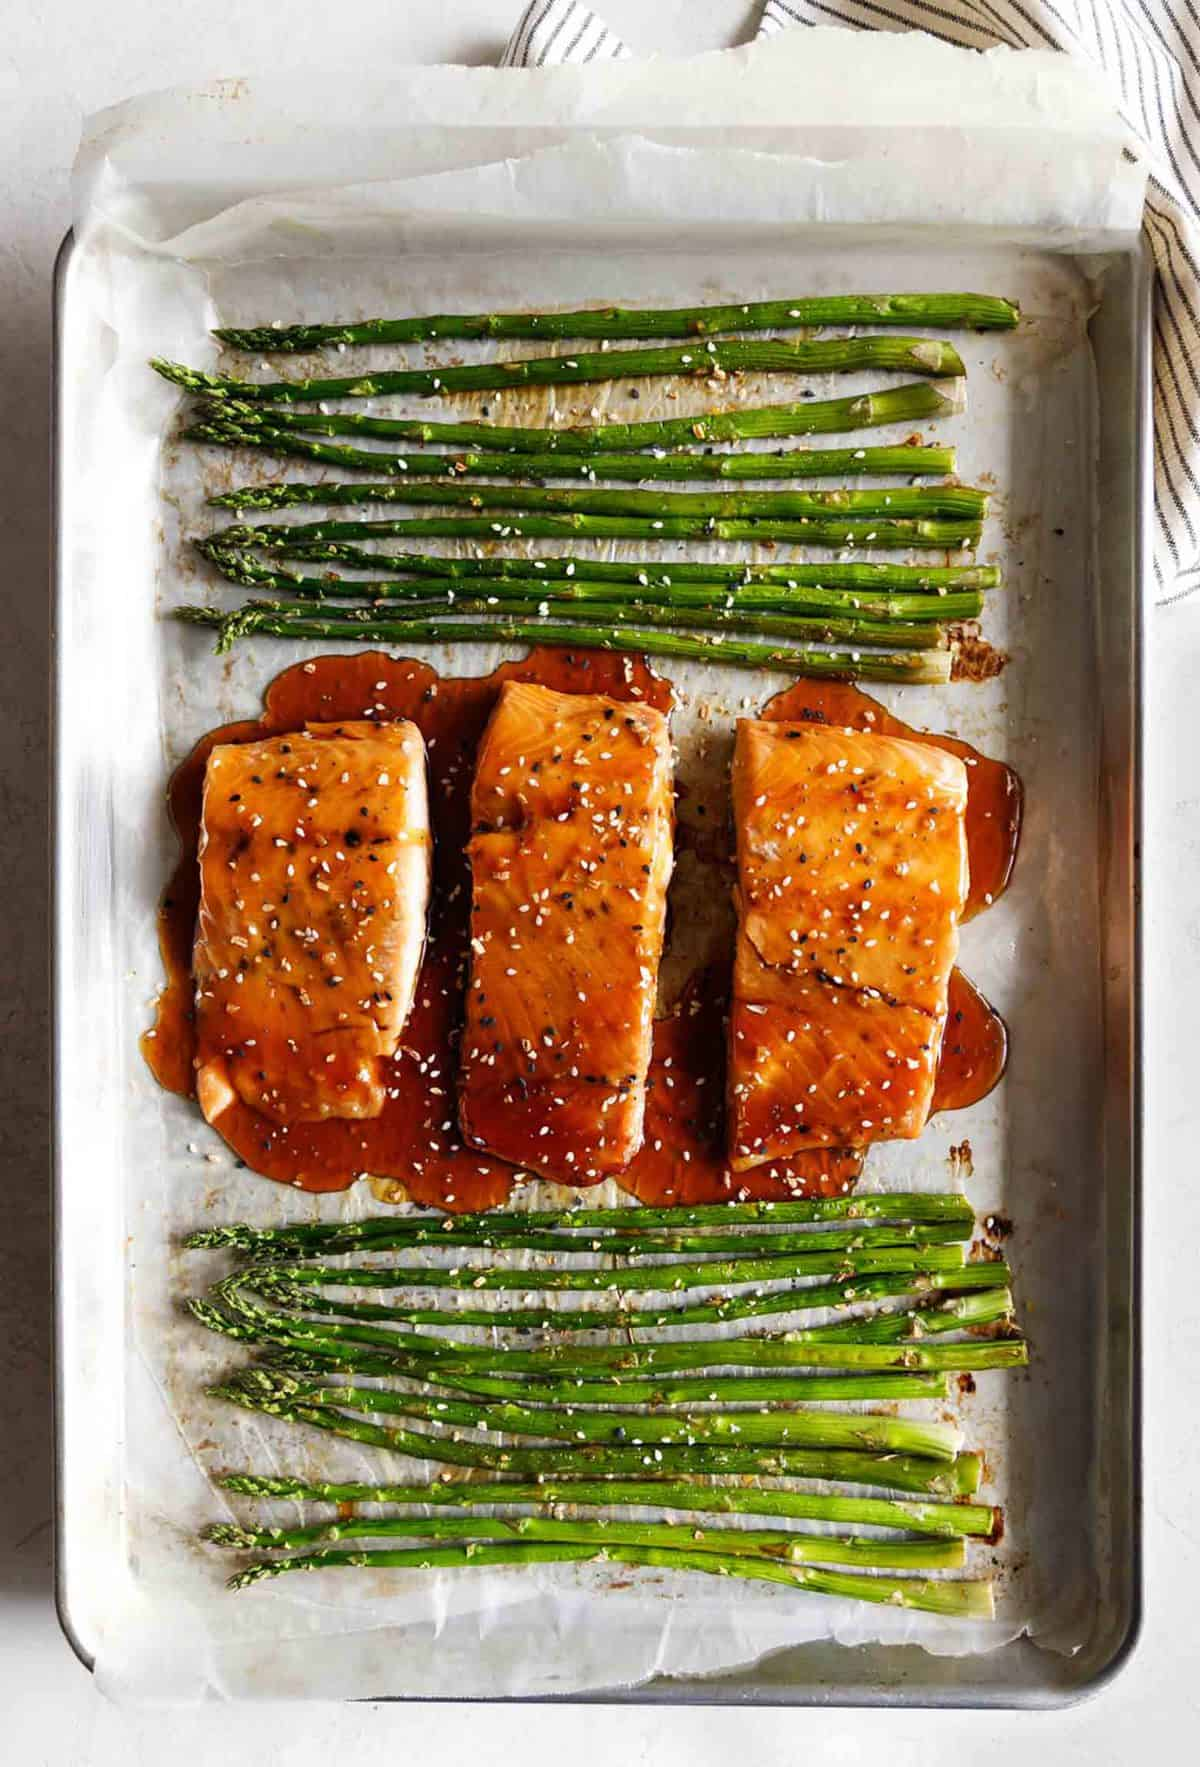 top view of baked sesame glazed salmon and asparagus on a baking sheet.